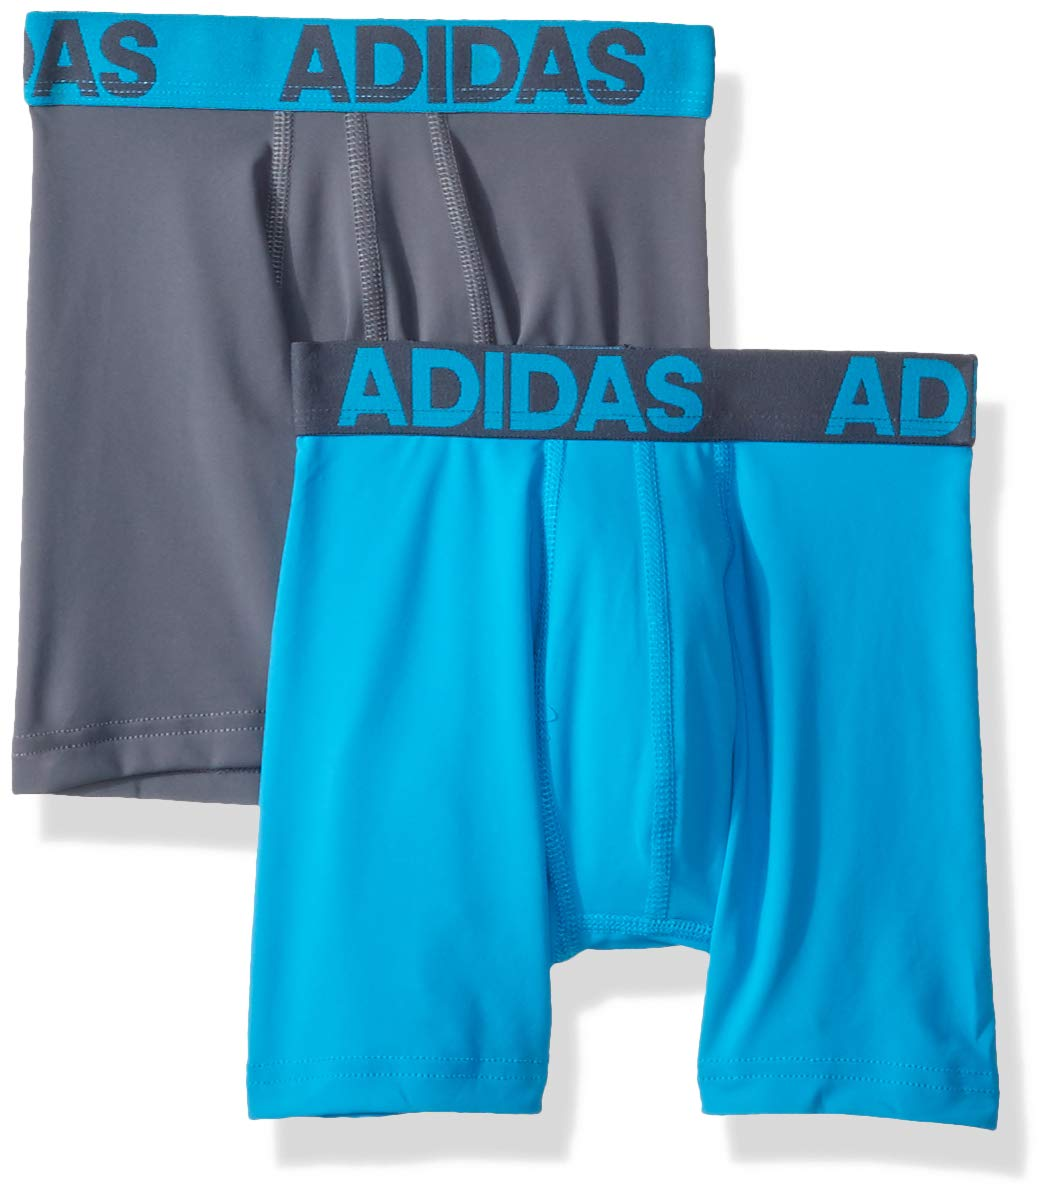 adidas Boys / Youth Sport Performance Climalite Boxer Brief Underwear (2-Pack) grey and blue large, Onix/solar blue solar blue/Onix, Large